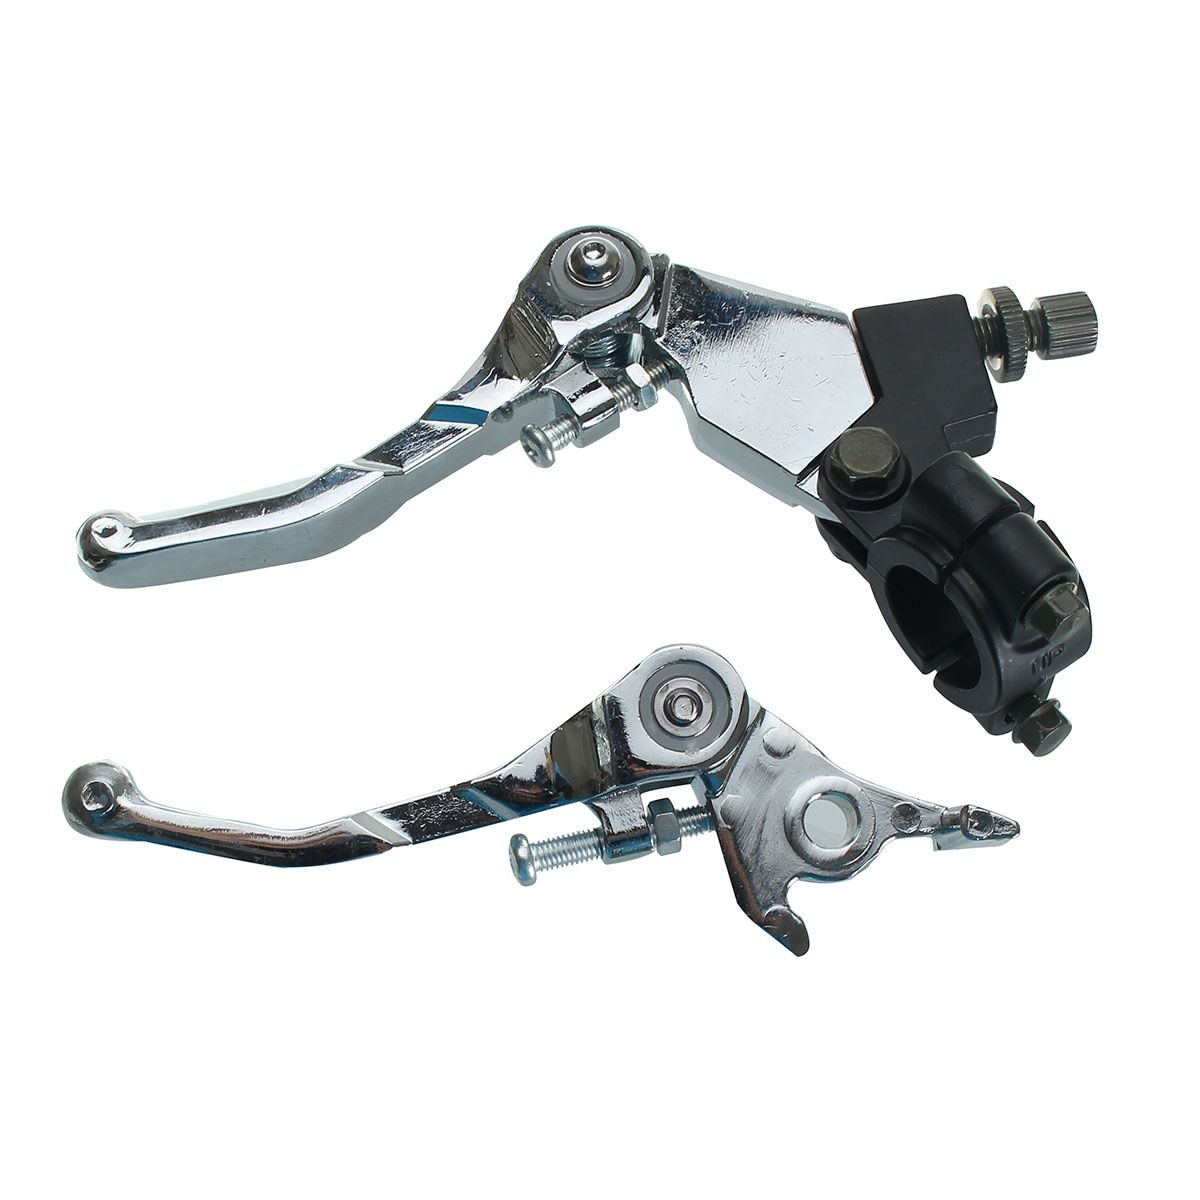 1 Pair Pit Bike Alloy Folding Snap Brake Grip Lever Clutch Set 110cc 125cc 140cc 160cc Chrome